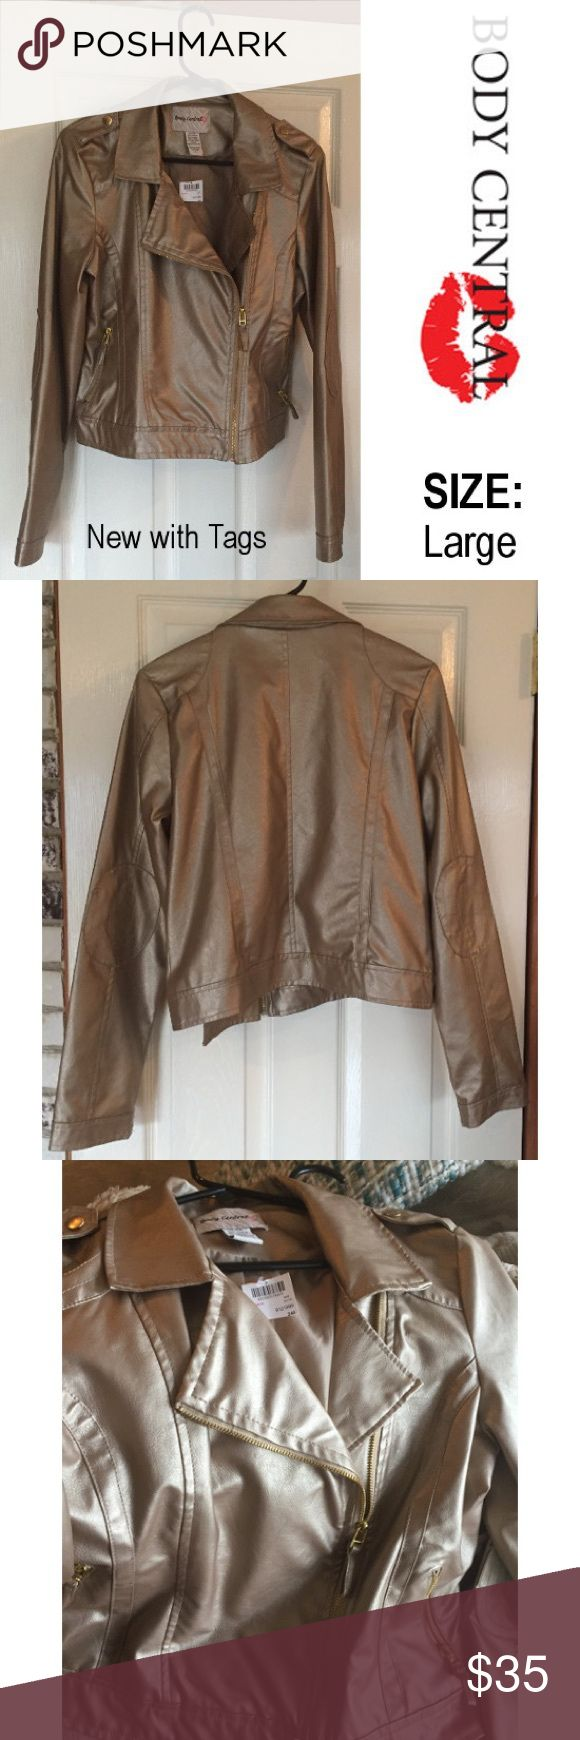 "NWT Soft Gold Body Central Moto Jacket - Large NWT Beautiful soft gold Body Central vegan leather jacket. Nicely cut, this Moto jacket is stunning.  Outer shell is 100% Polyurethane. Inner lining is 100% Polyester. Tag Size Large. Approx. measurements: Length - 21"", Width (underarm to underarm) - 20"", Sleeve length (underarm to end of cuff) - 19"". Body Central Jackets & Coats"